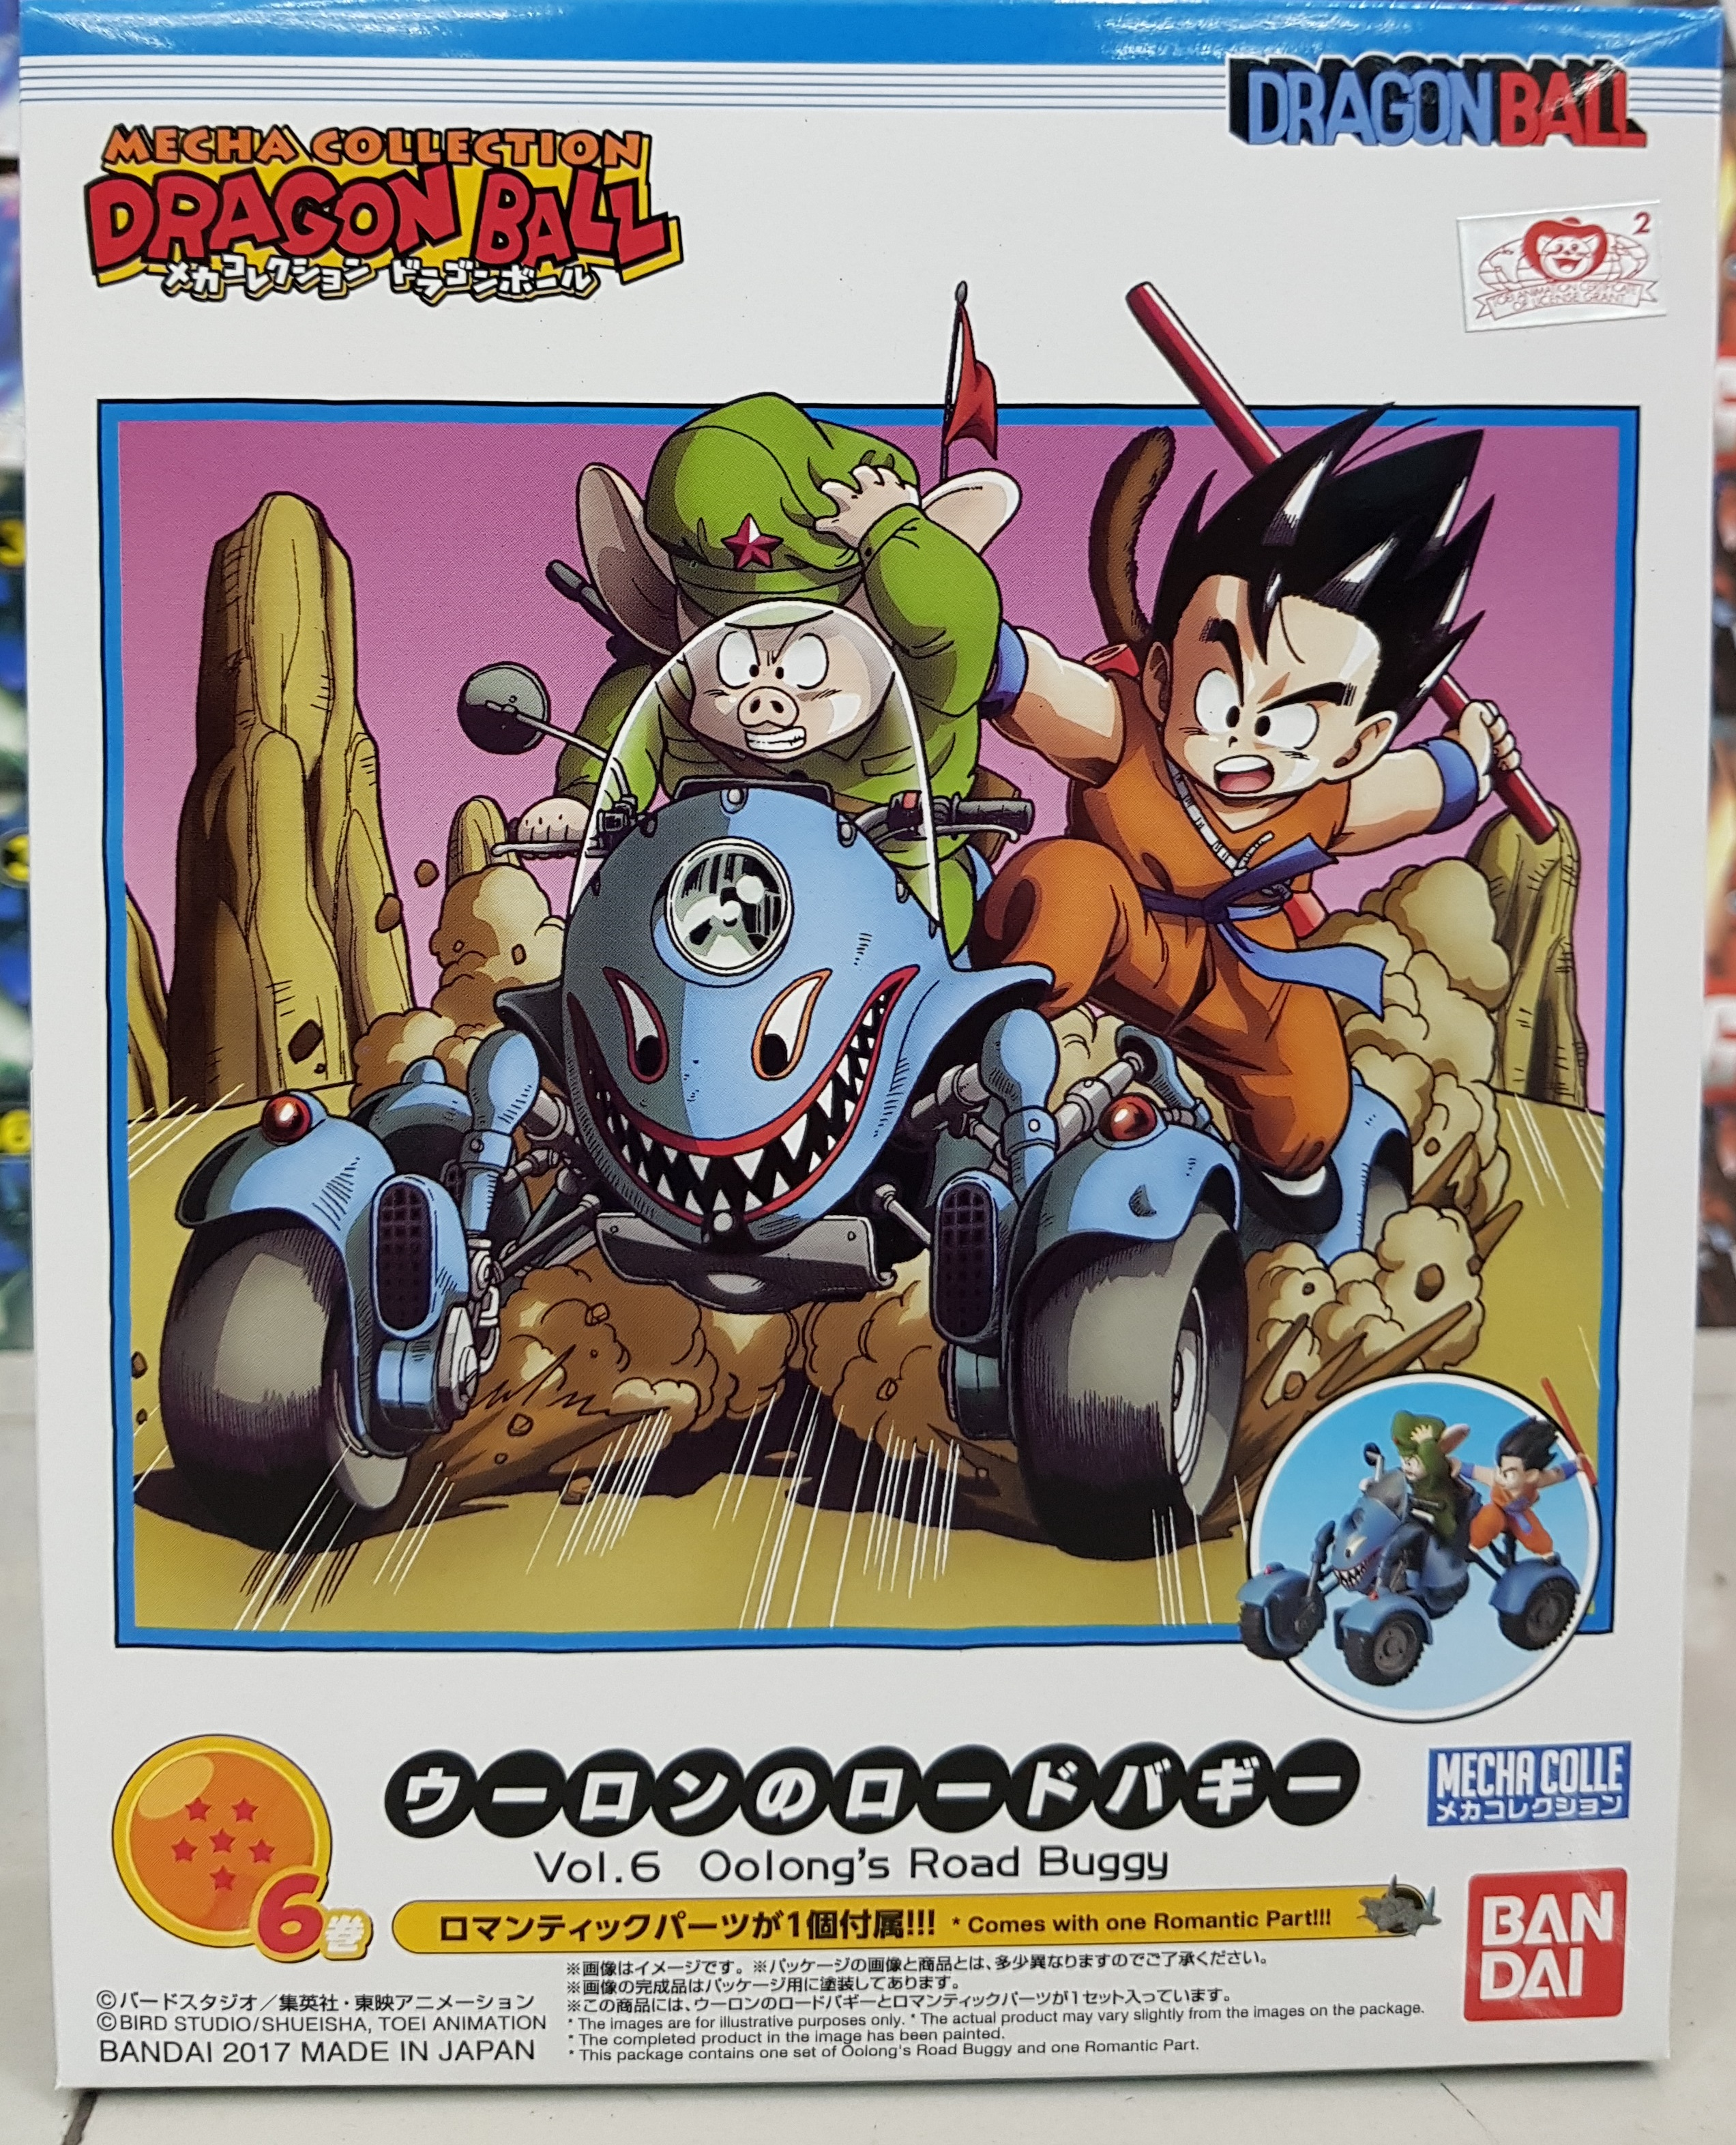 Oolong's Road Buggy Vol.6